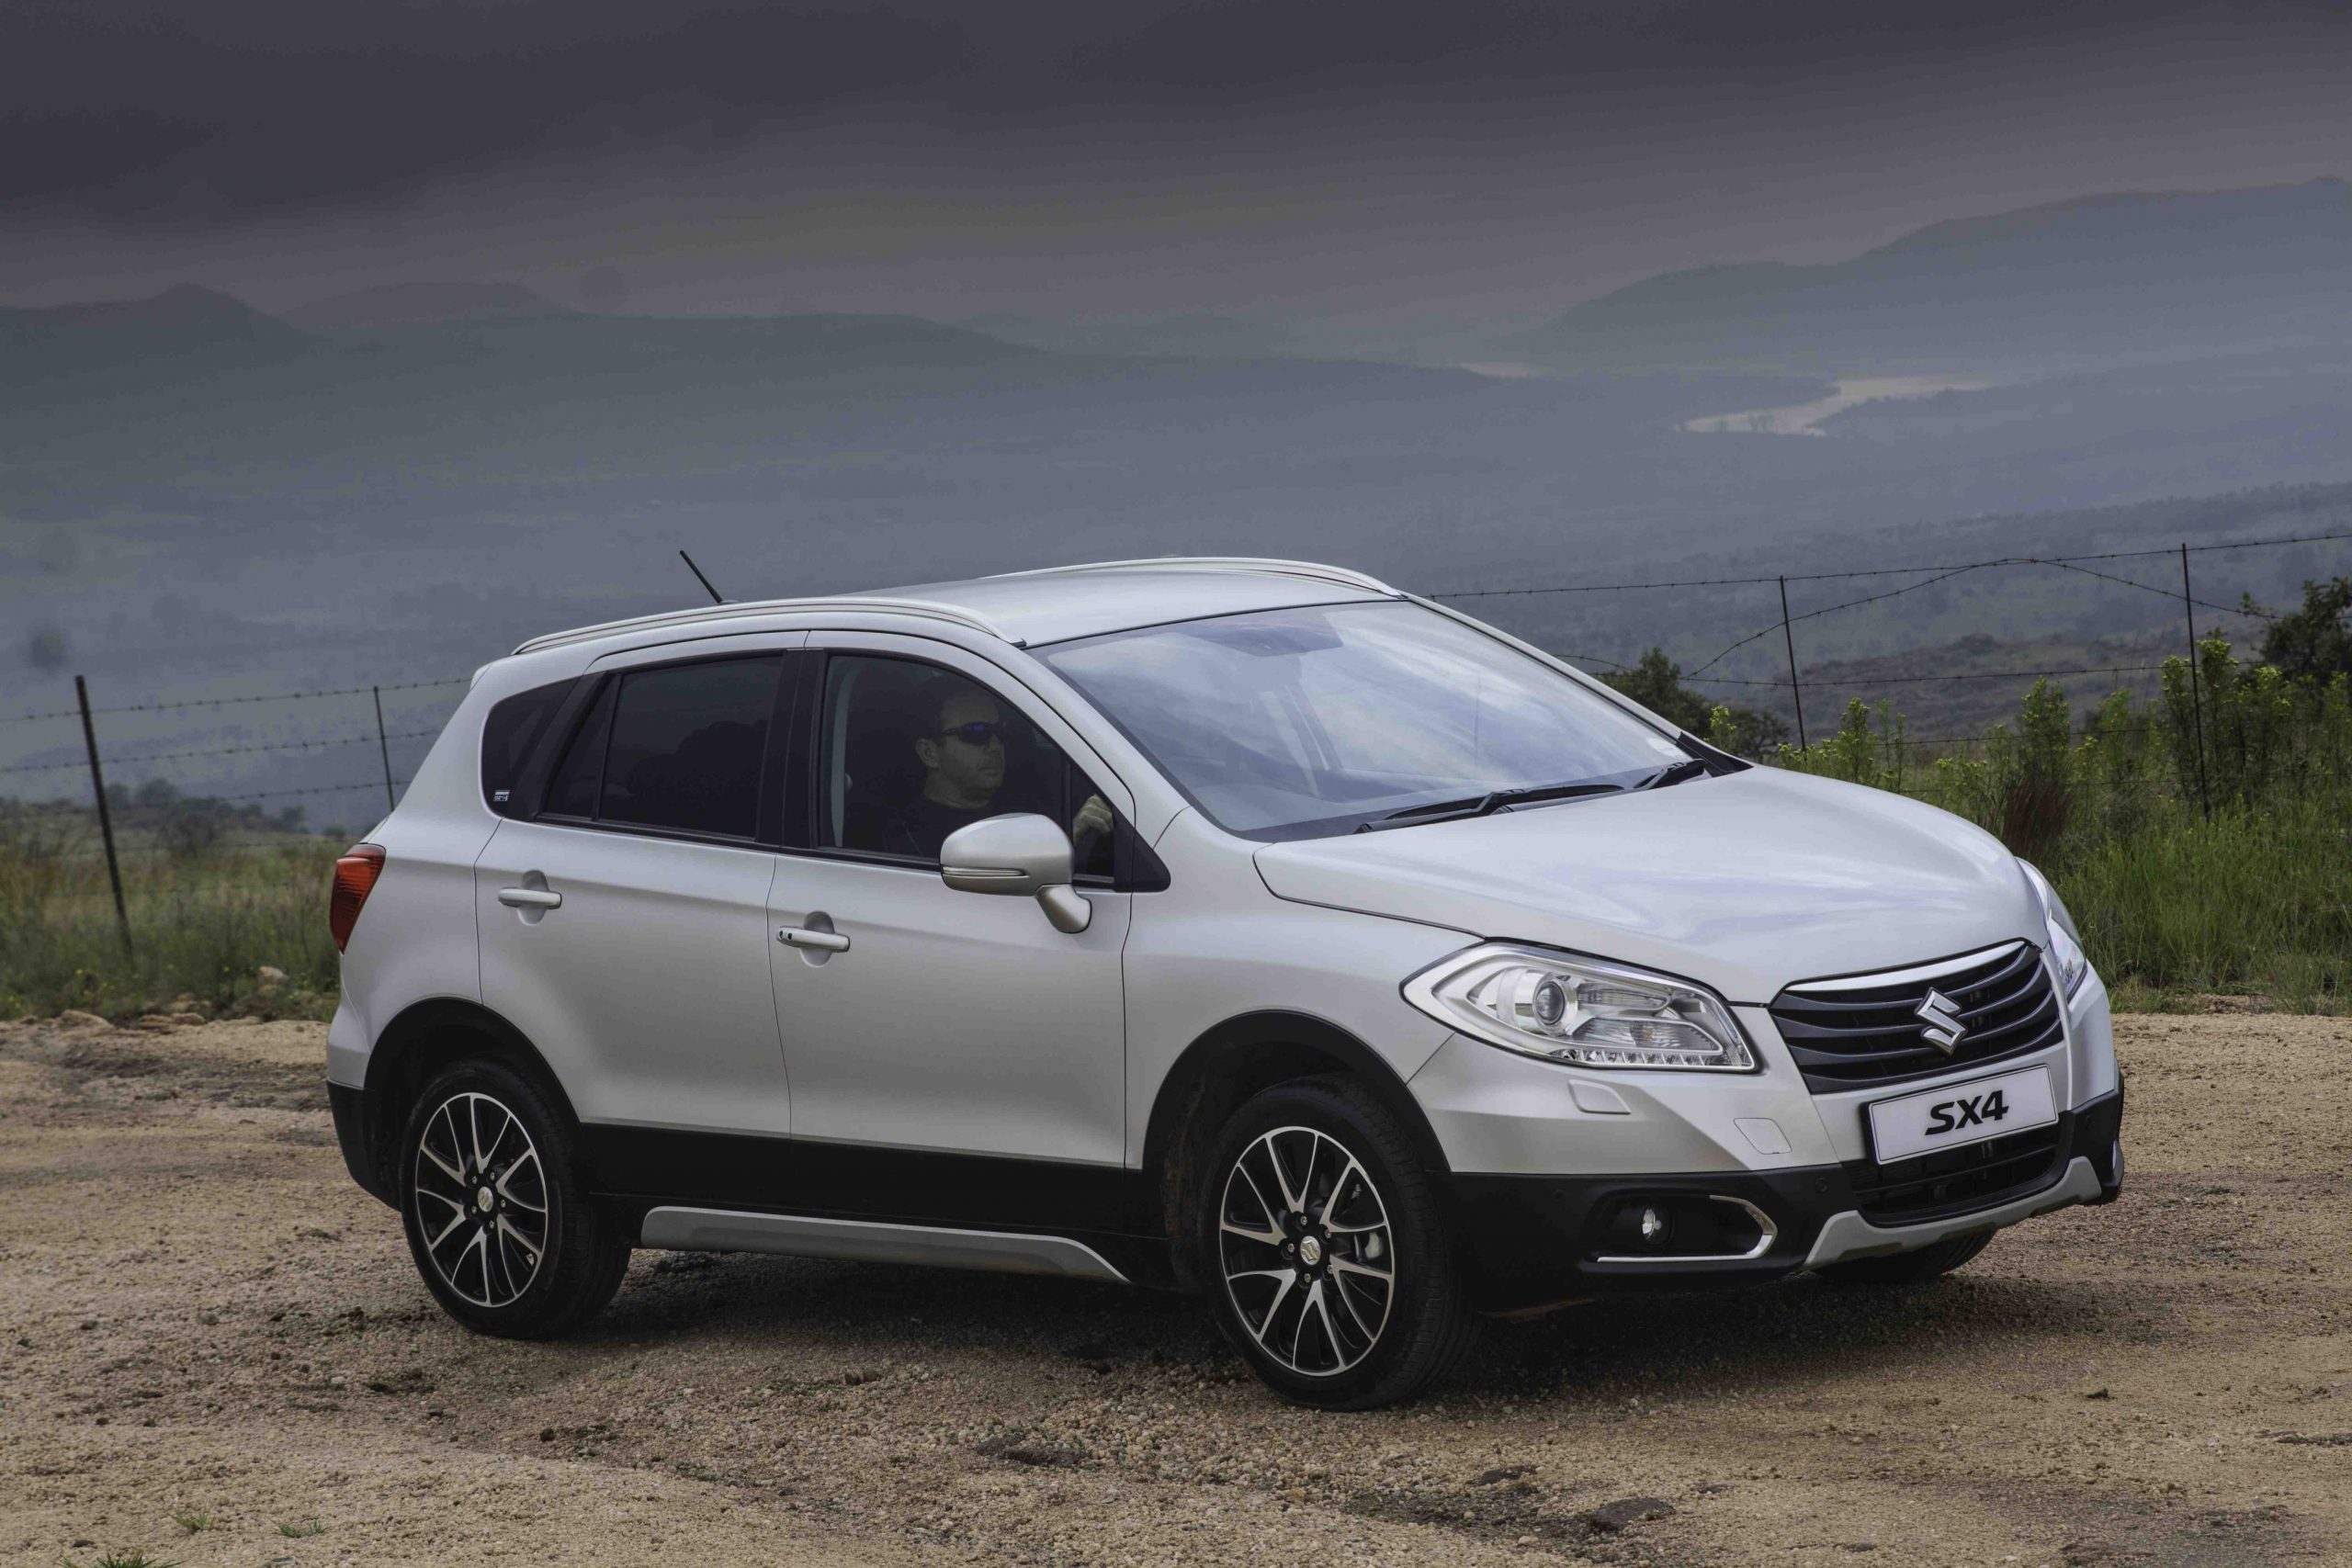 Suzuki SX4 (2014): Launch Drive